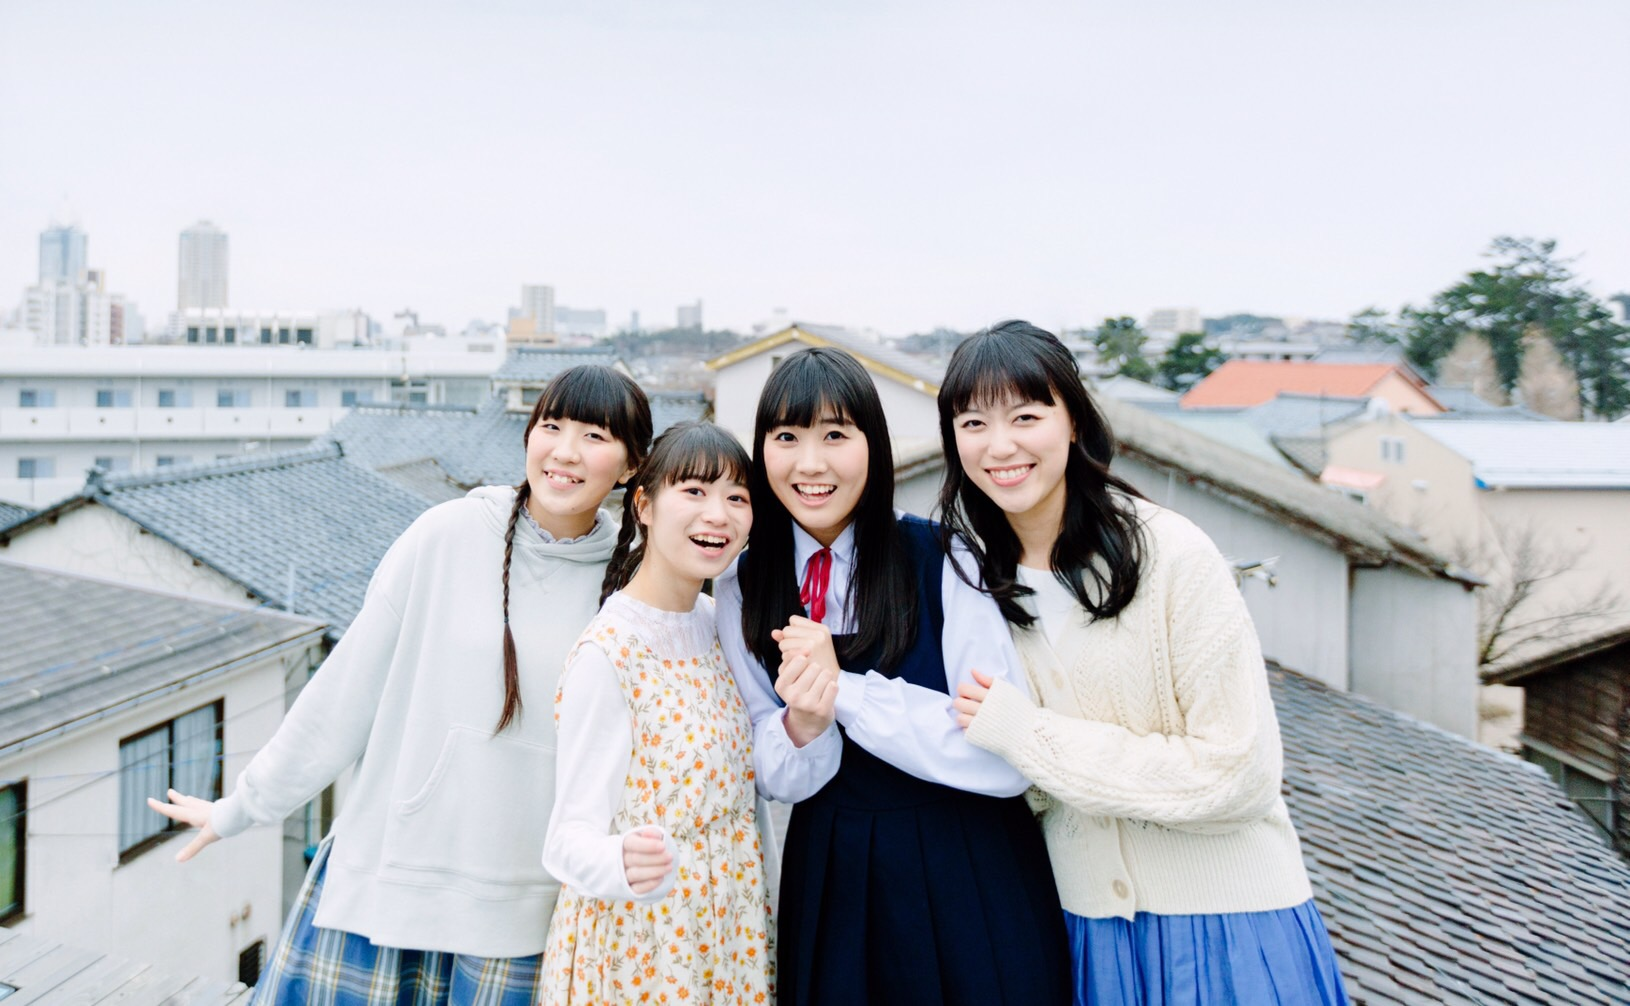 RYUTist presents 「HI, HOW ARE YOU with ayU tokiO」-7th single「センシティブサイン」先行リリースイベント-